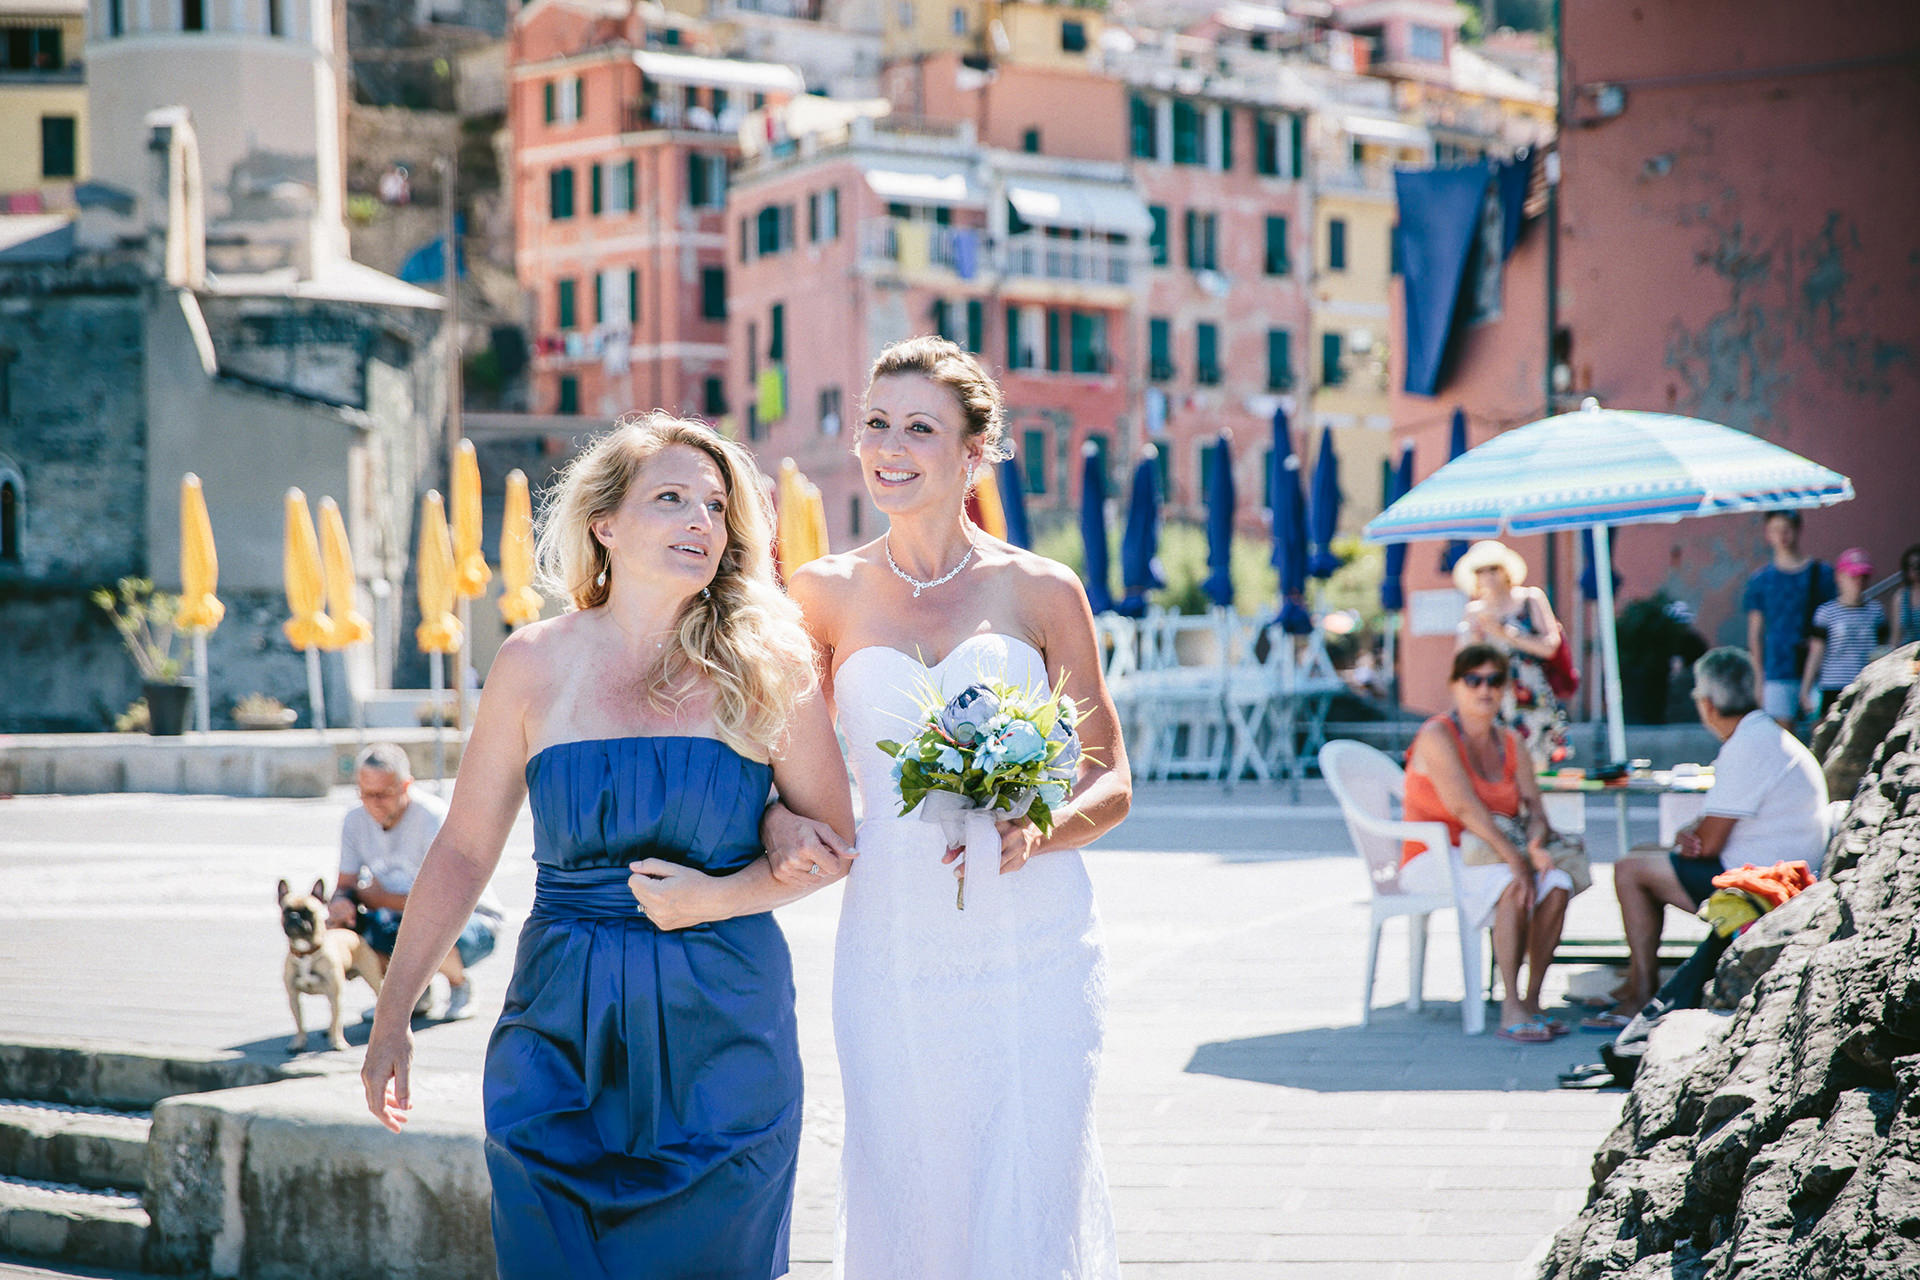 Italy Small Village Wedding Image - Vernazza Elopements | Bride and bridesmaid have arrived at the ceremony spot